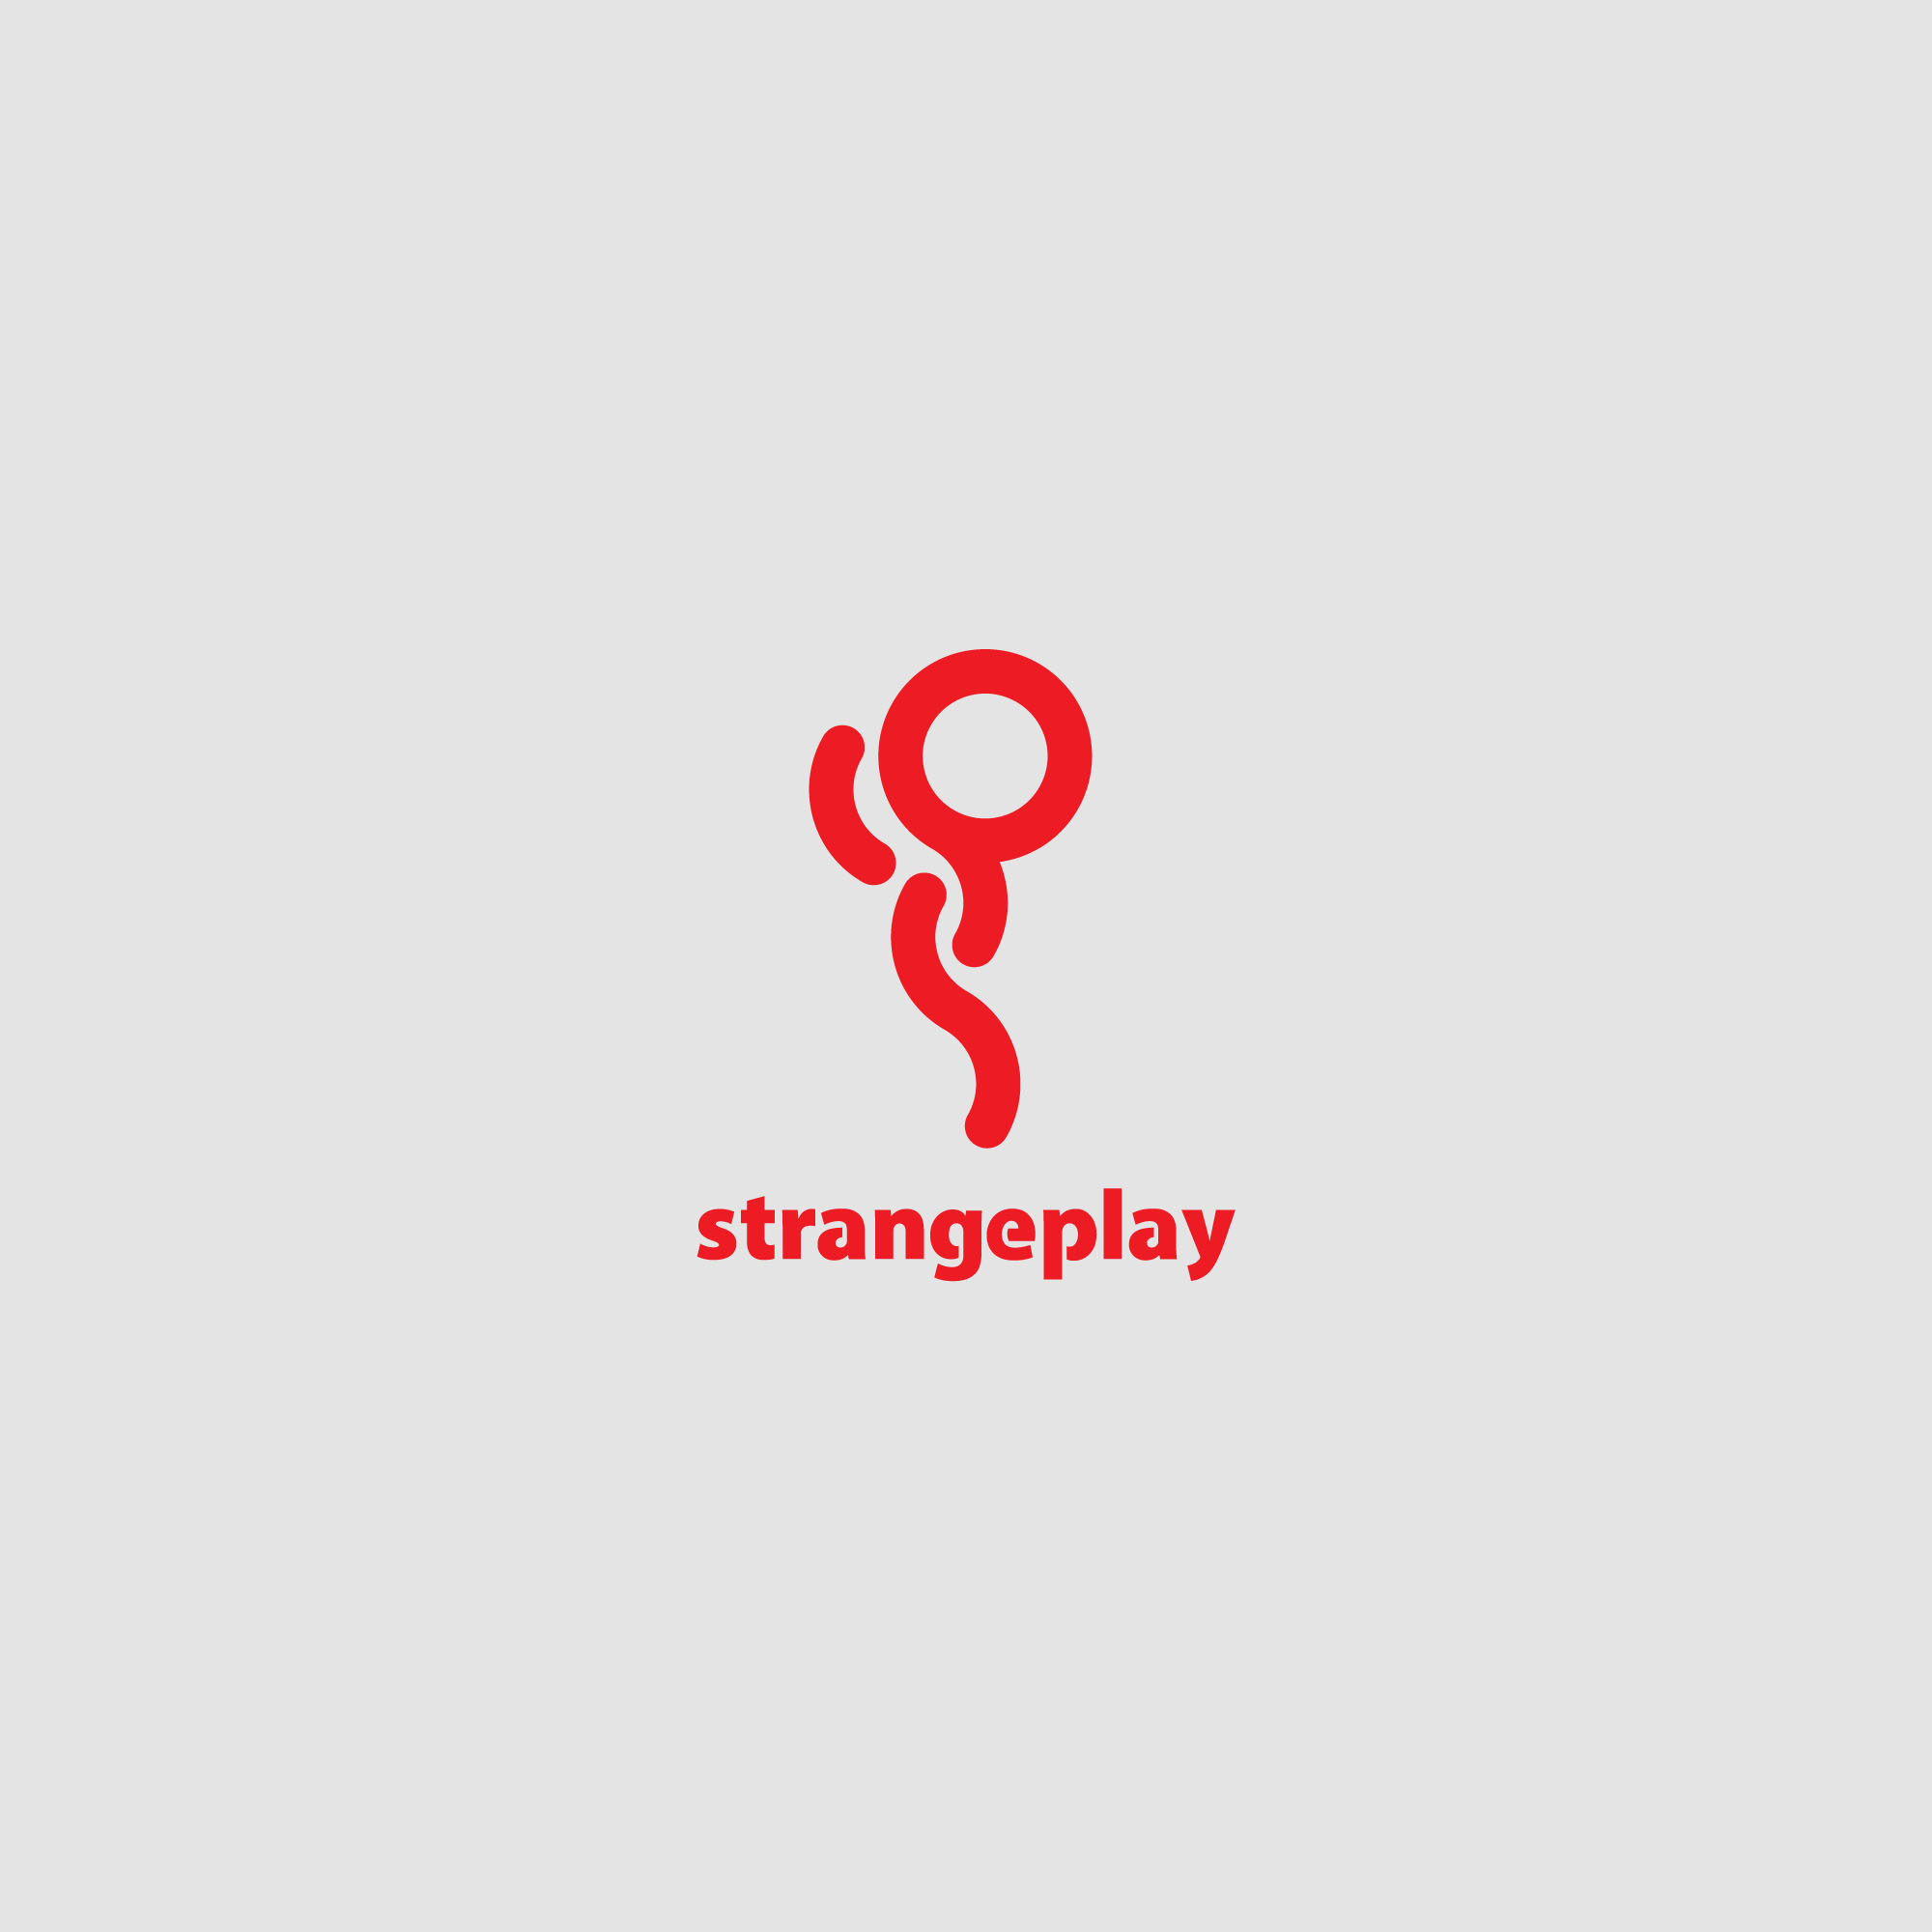 Logo Design by tanganpanas - Entry No. 110 in the Logo Design Contest Strange Play Logo Design.